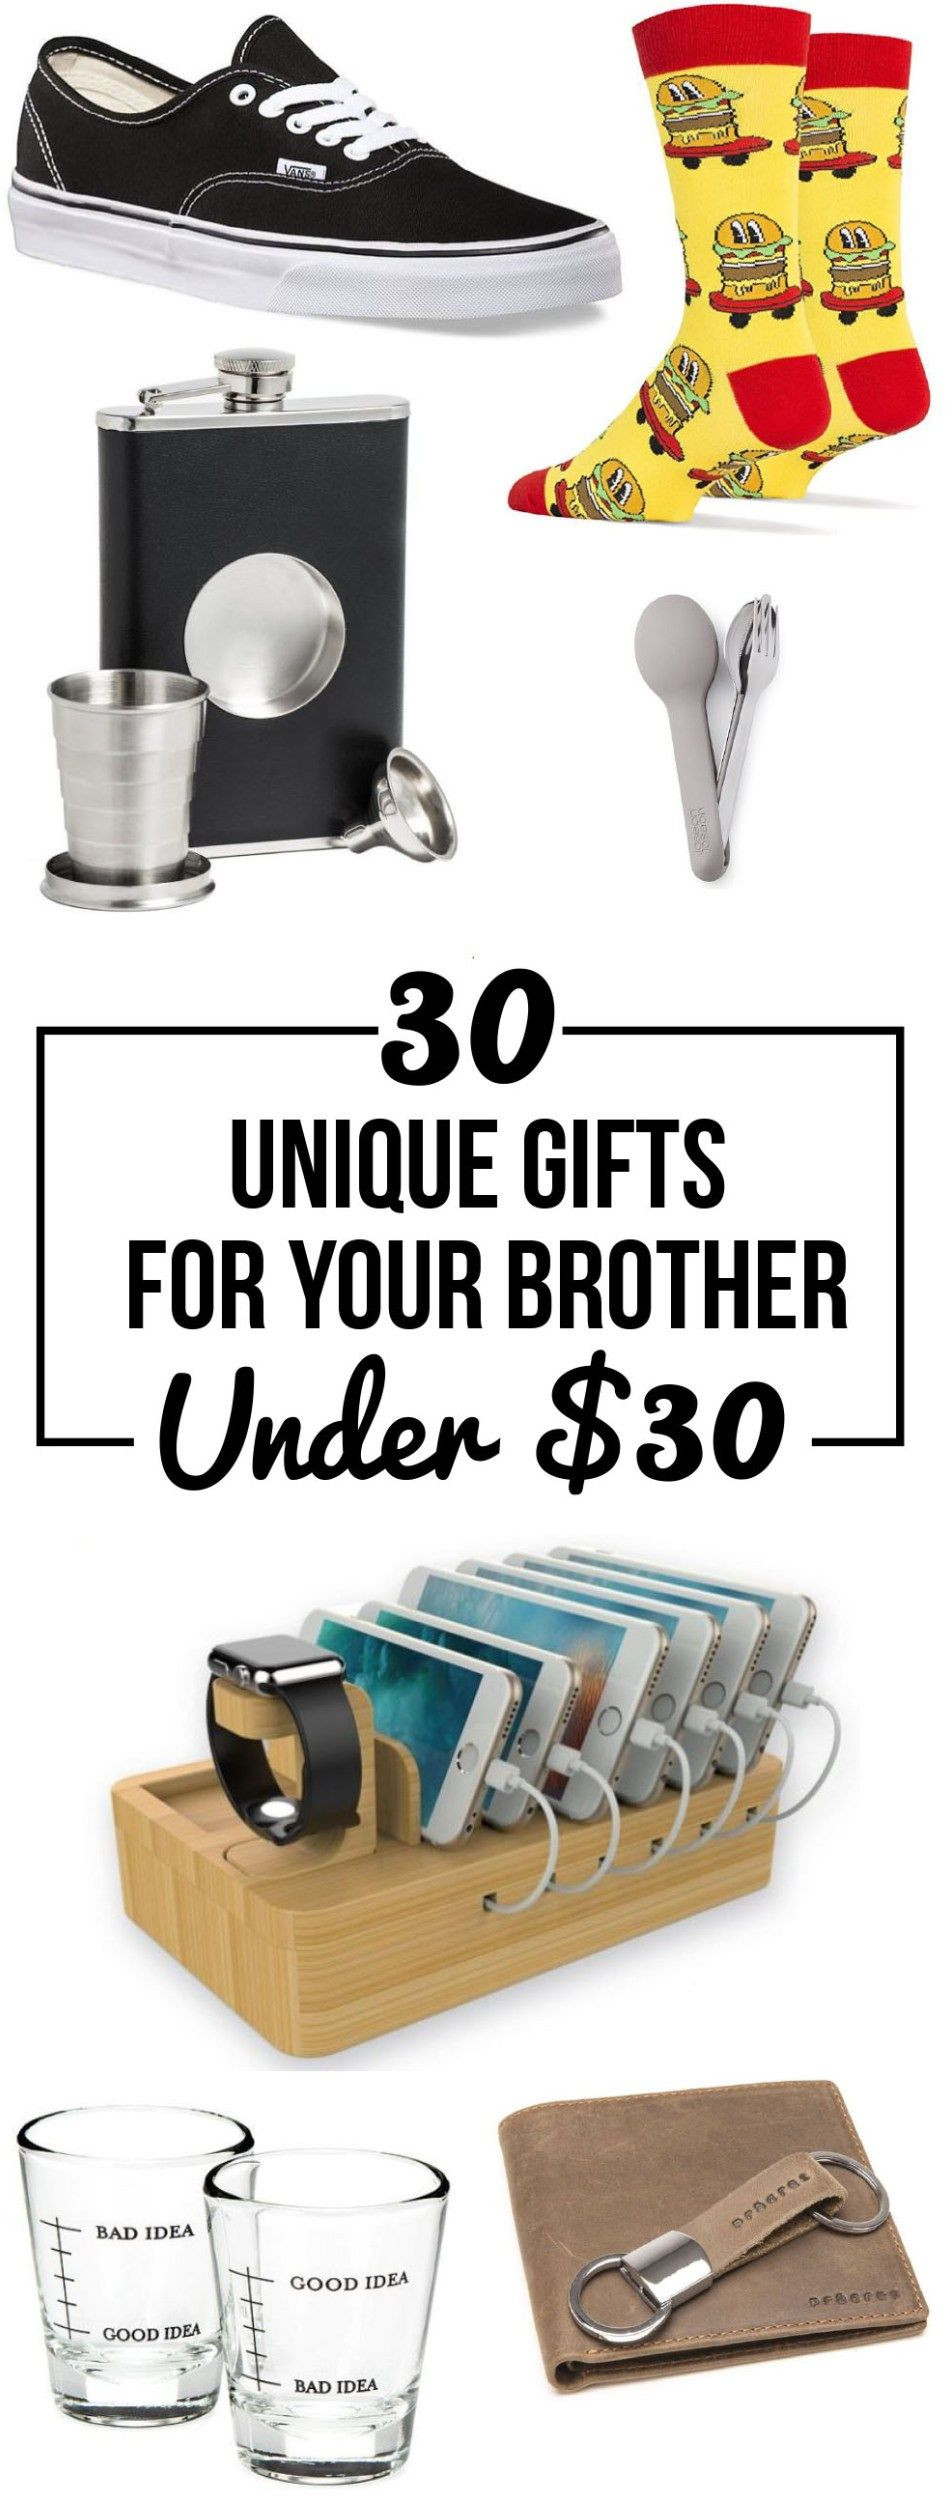 DIY Christmas Gifts For Brothers  30 Unique Gifts For Your Brother All Under $30